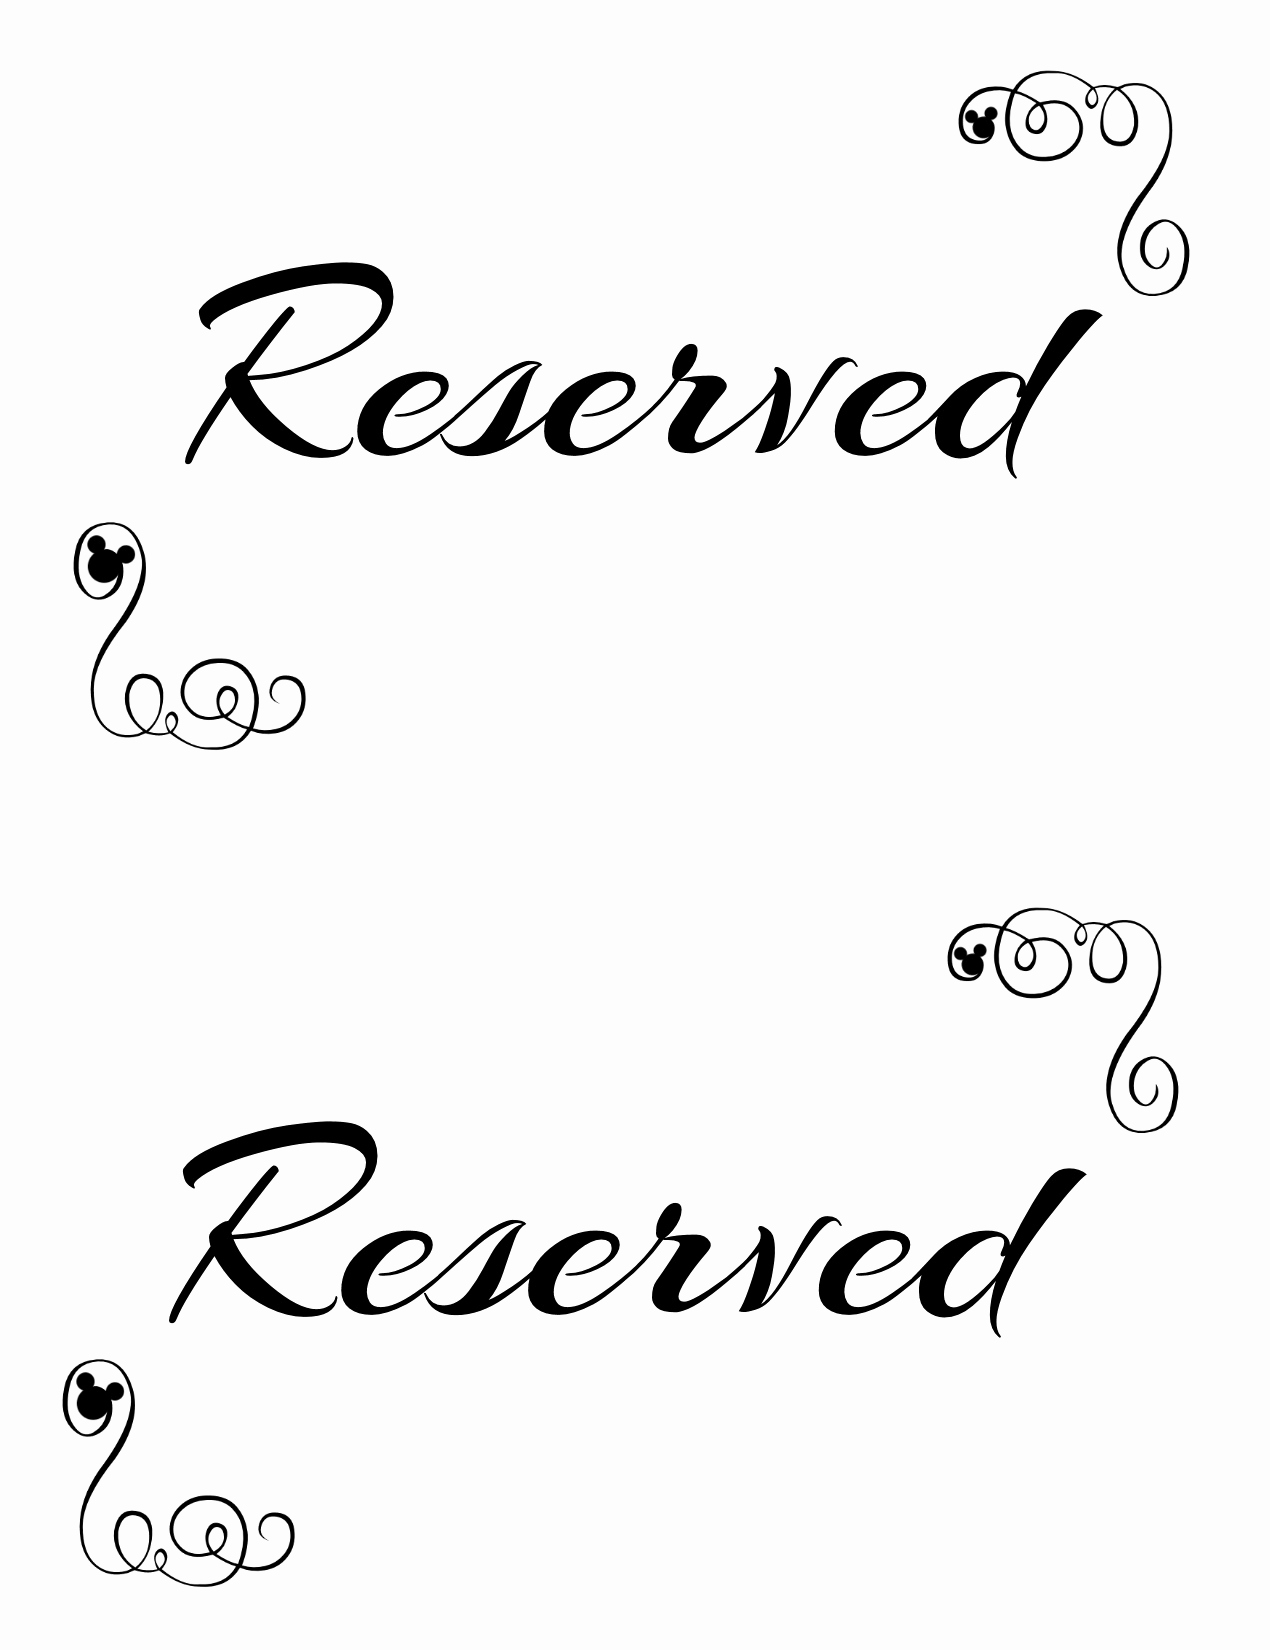 Free Printable Sign Templates Beautiful Free Printable Reserved Seating Signs for Your Wedding